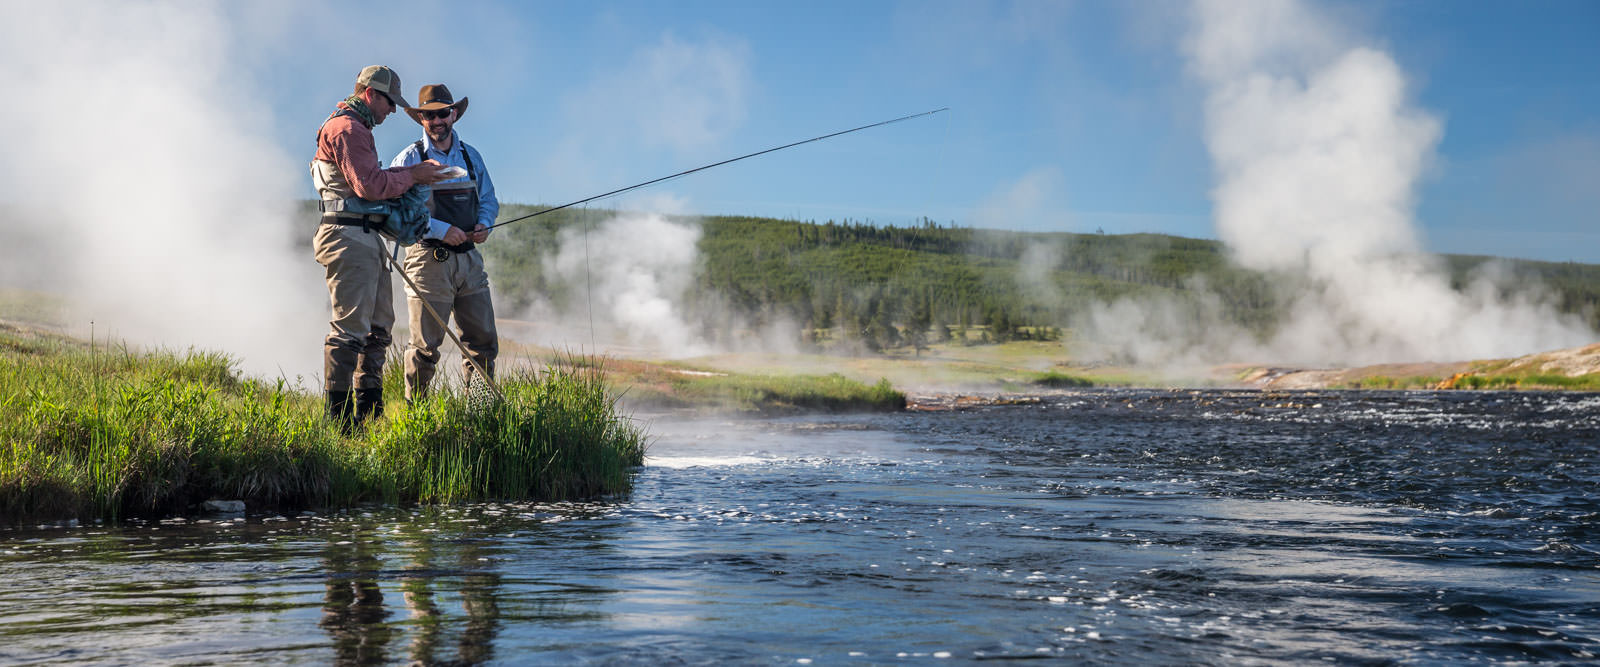 Montana fly fishing information on rivers guides and lodges for Yellowstone national park fishing